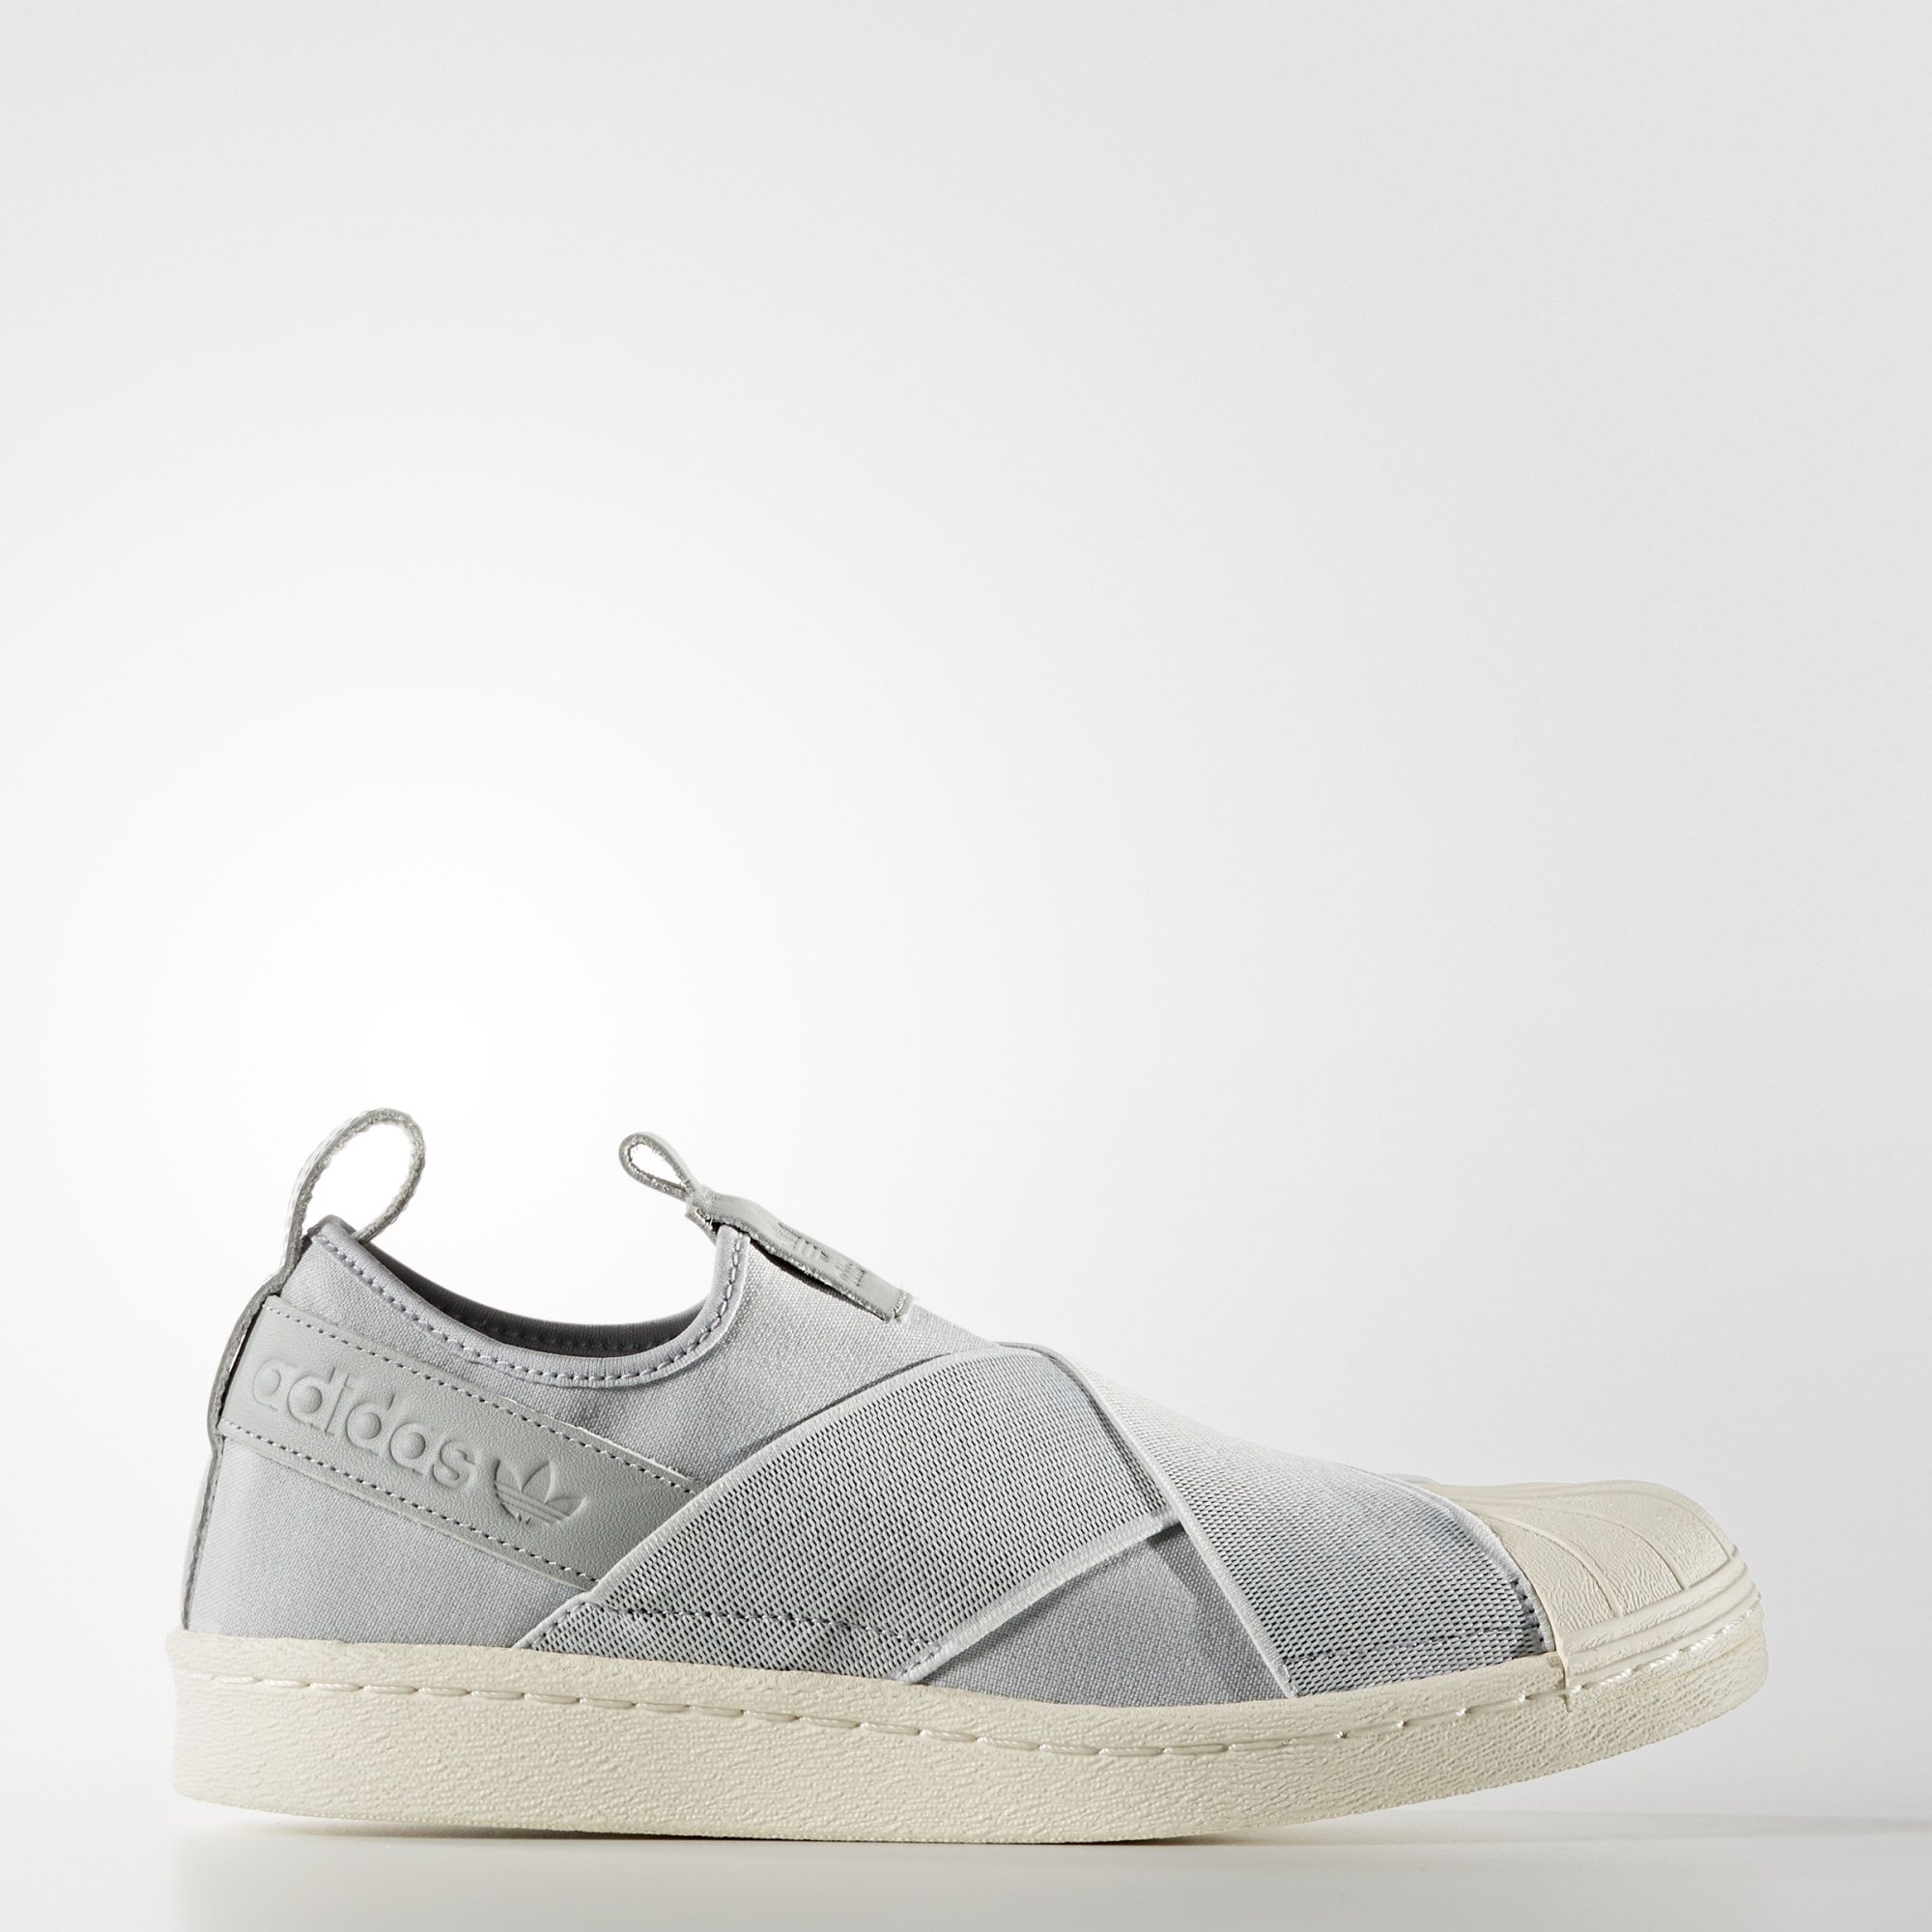 The classic adidas Superstar sneaker gets remixed as a chic